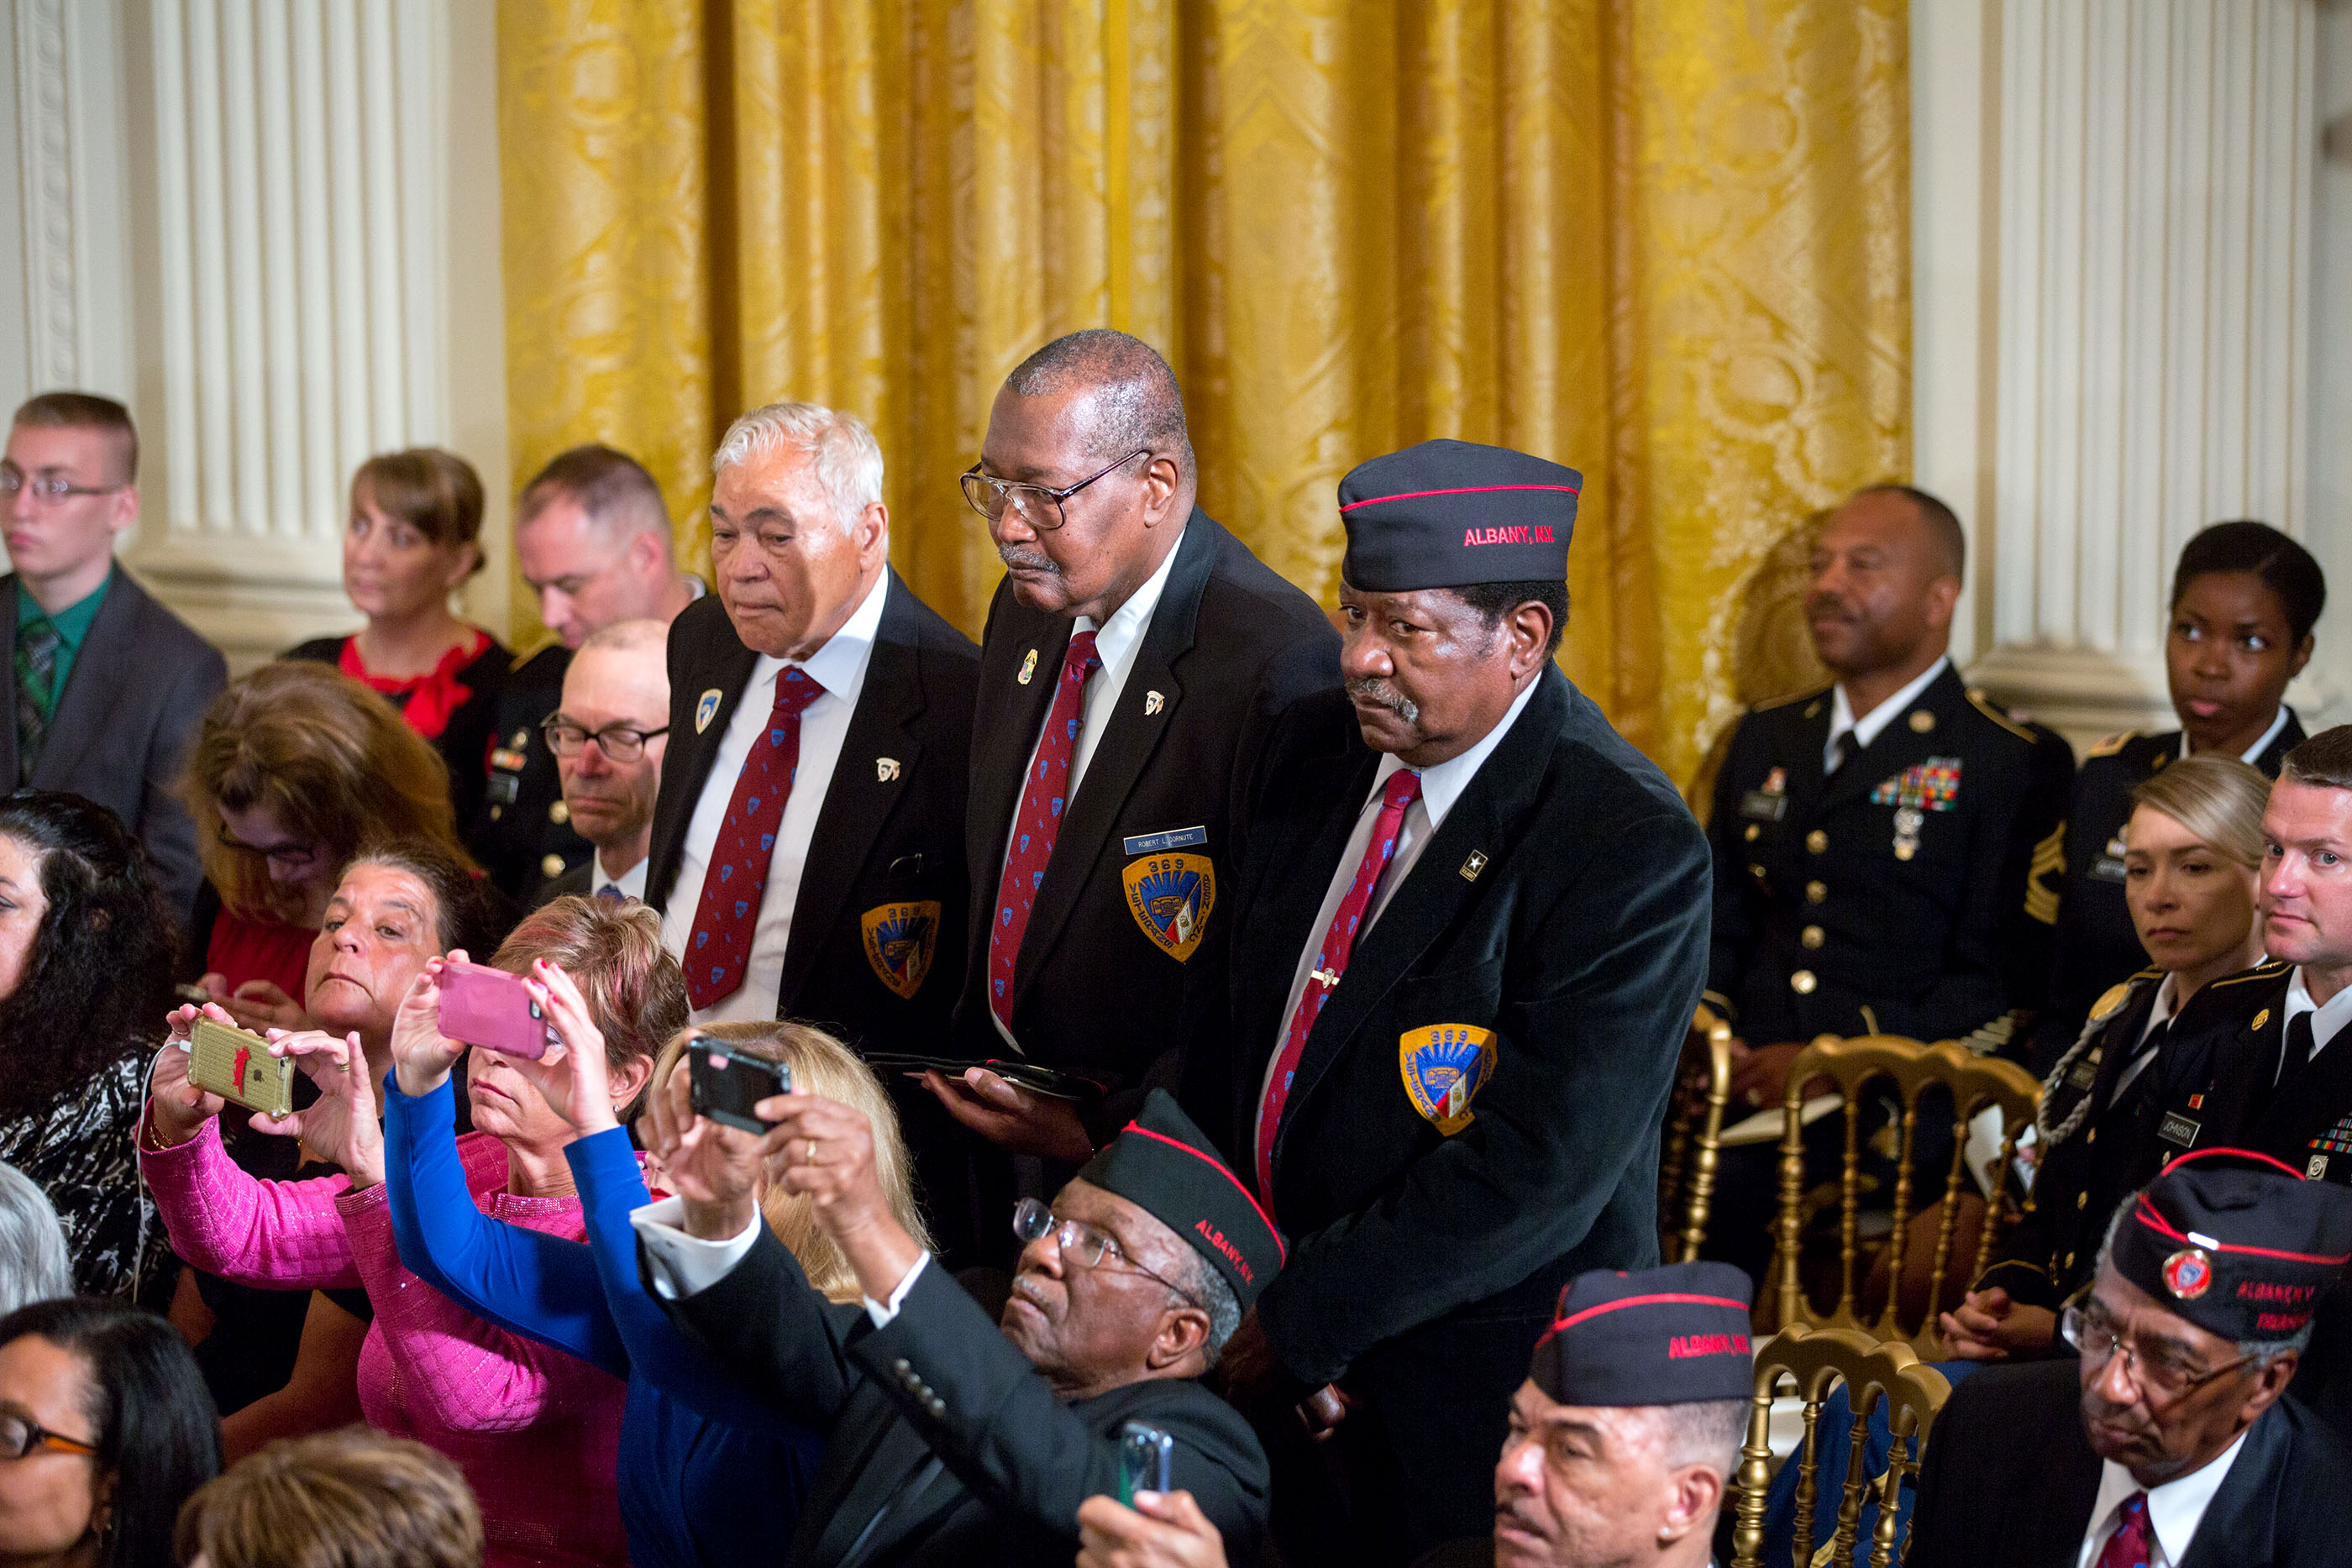 Members of the 369th Infantry Regiment Veterans Association stand as President Barack Obama awards the Medal of Honor posthumously to Army Private Henry Johnson for conspicuous gallantry during World War I, at a ceremony in the East Room of the White Hous